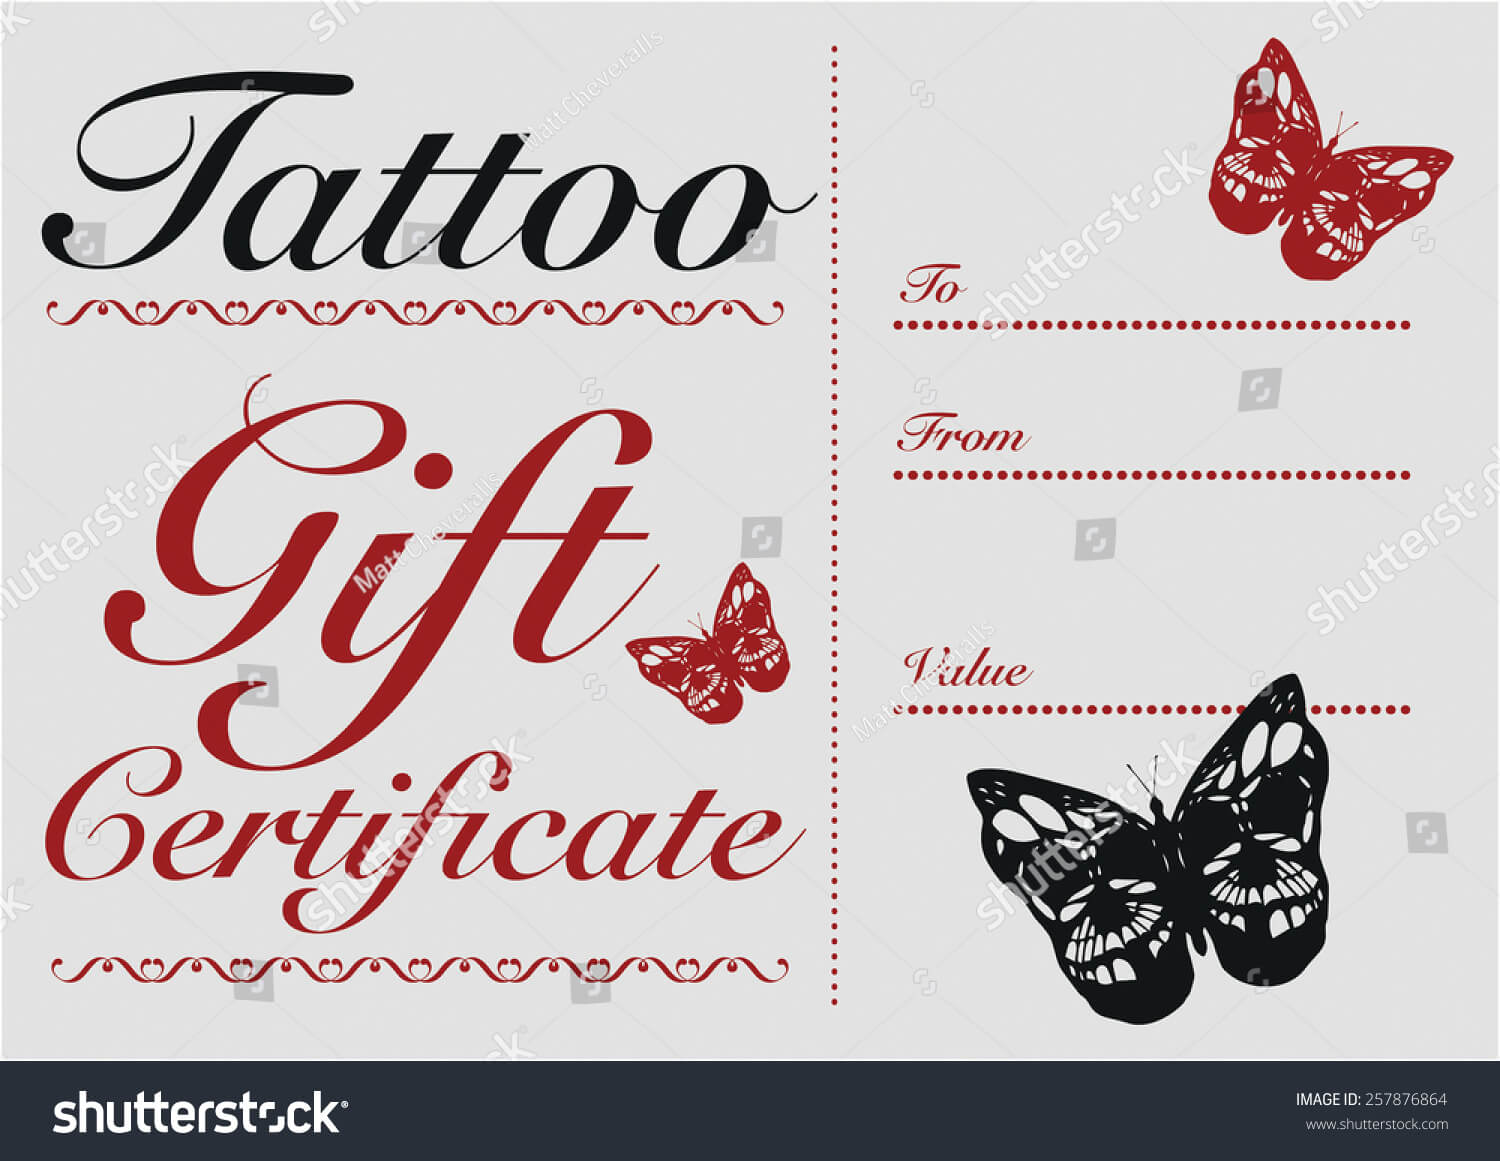 Tattoo Gift Certificate Template Free With Regard To Tattoo Gift Certificate Template